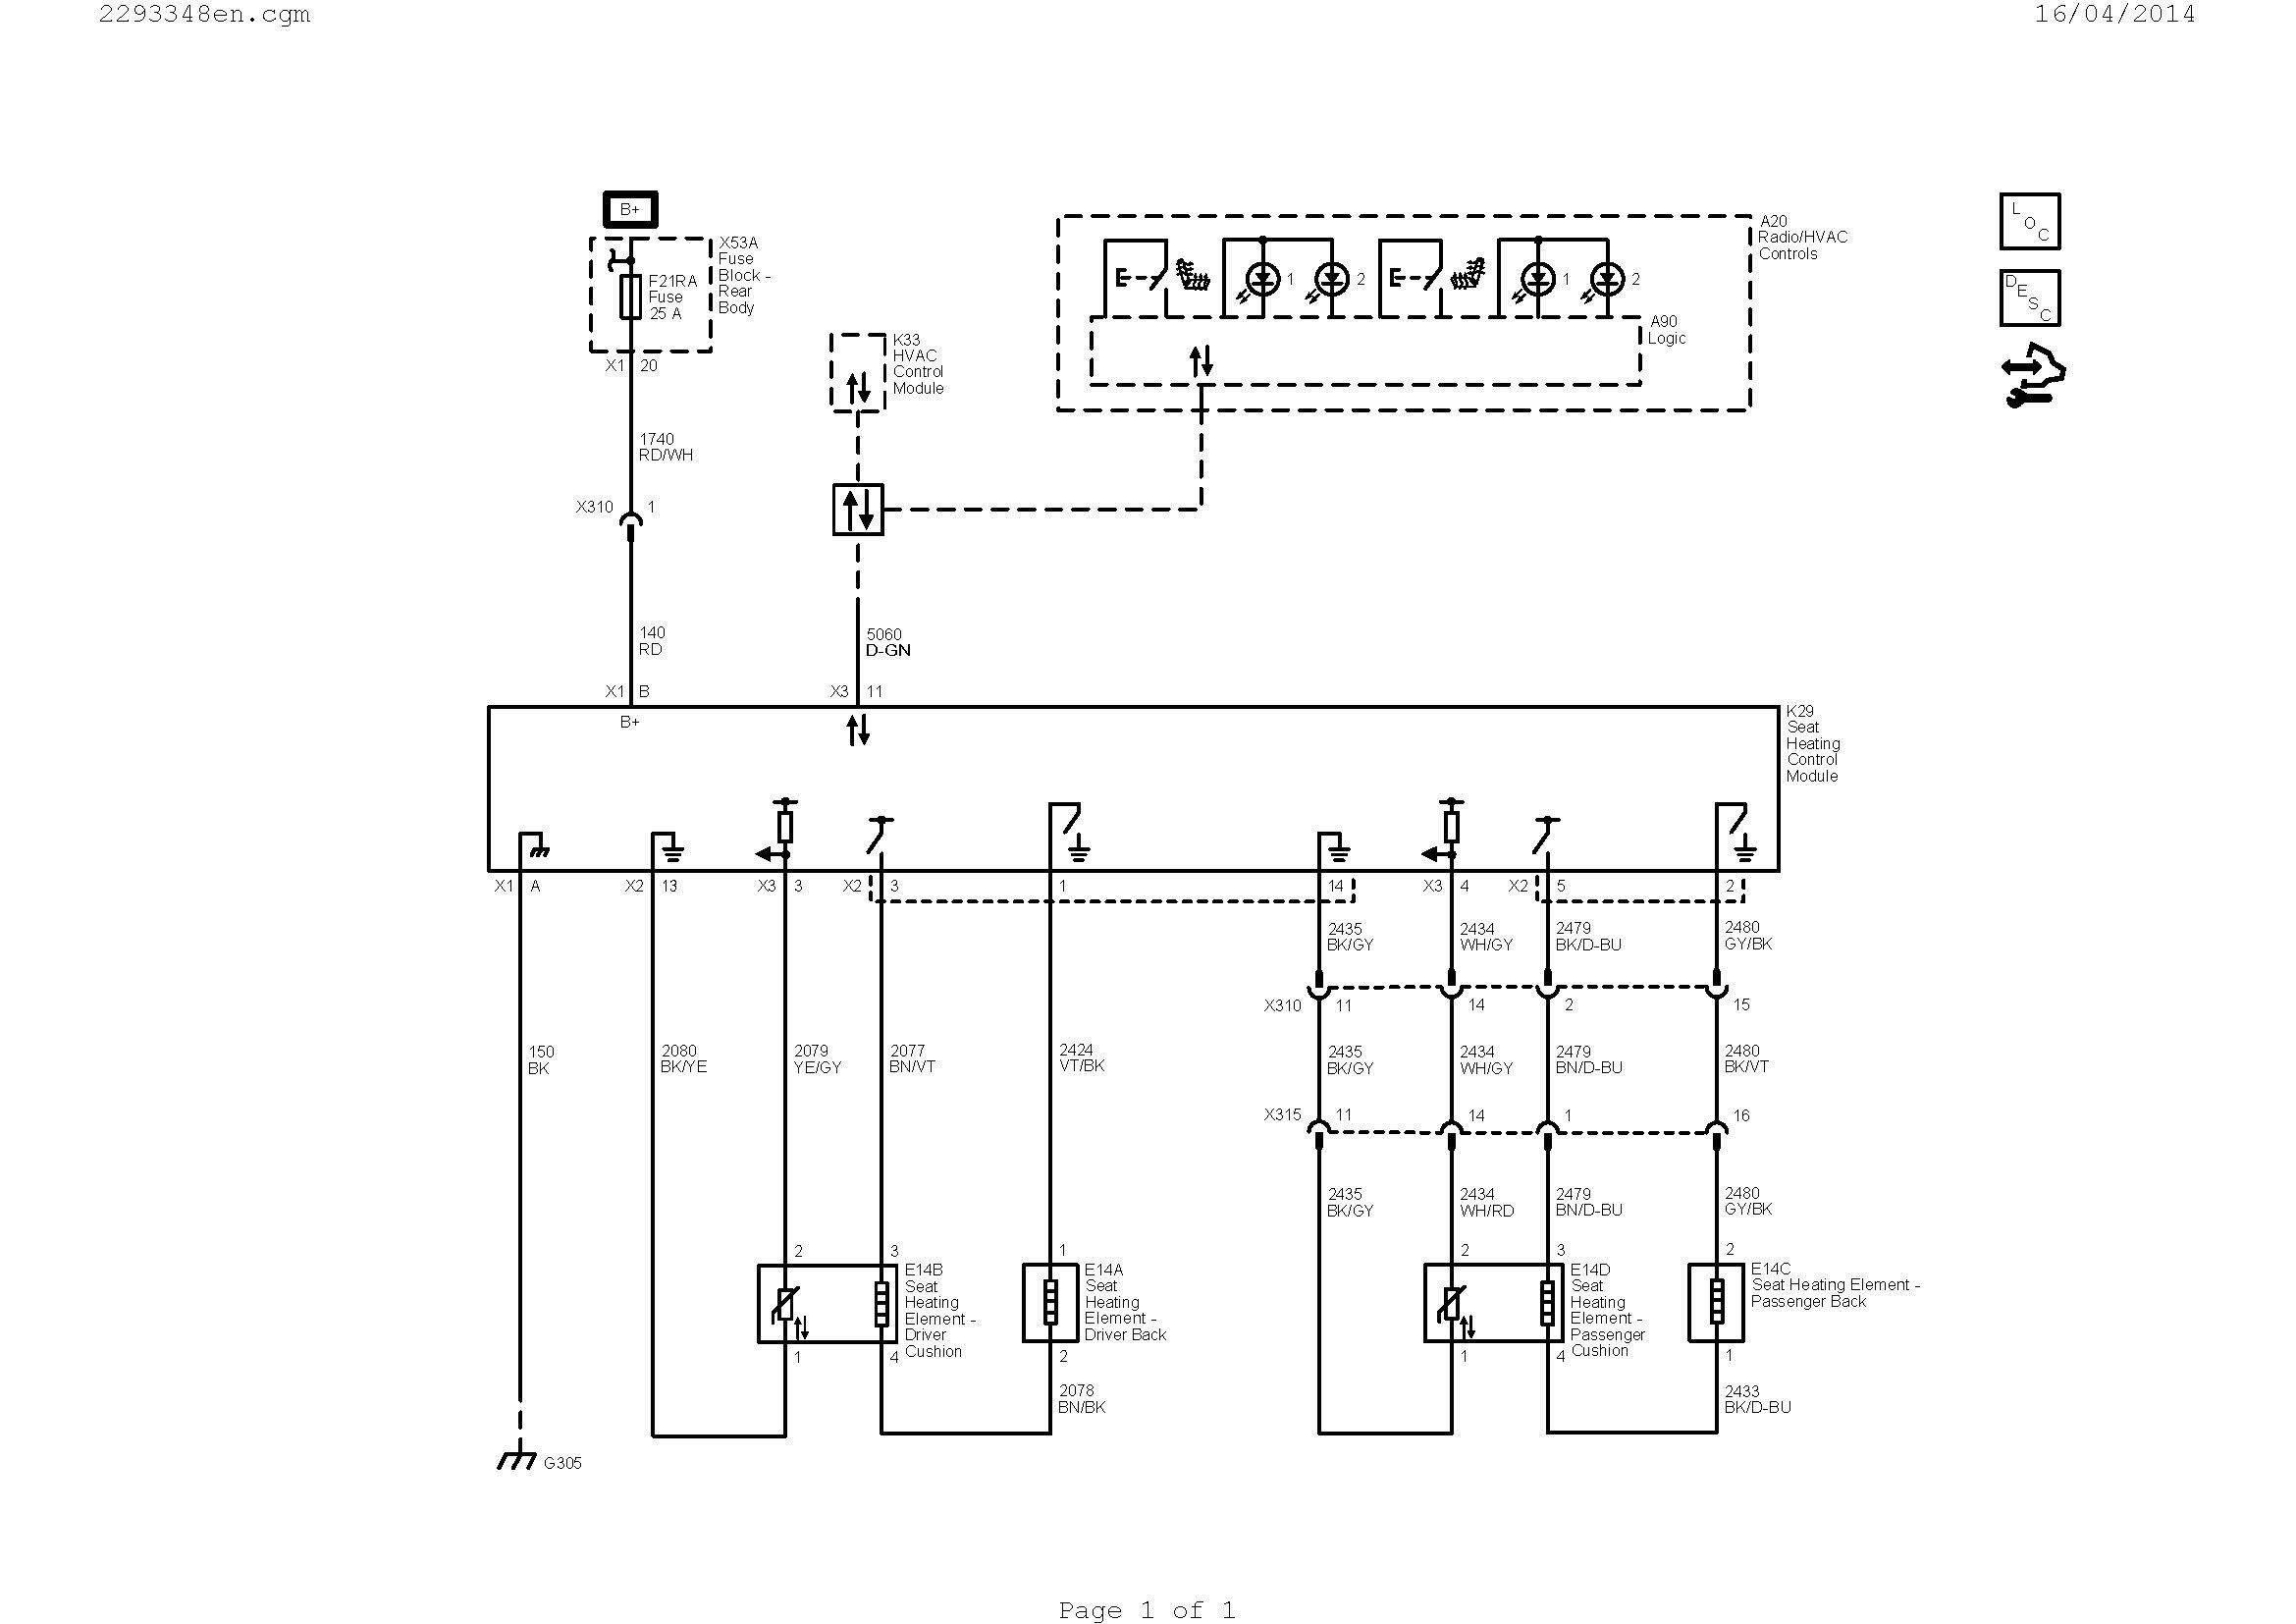 beverage air kf48 1as wiring diagram Download-7 wire thermostat wiring diagram Download Wiring A Ac Thermostat Diagram New Wiring Diagram Ac 20-t